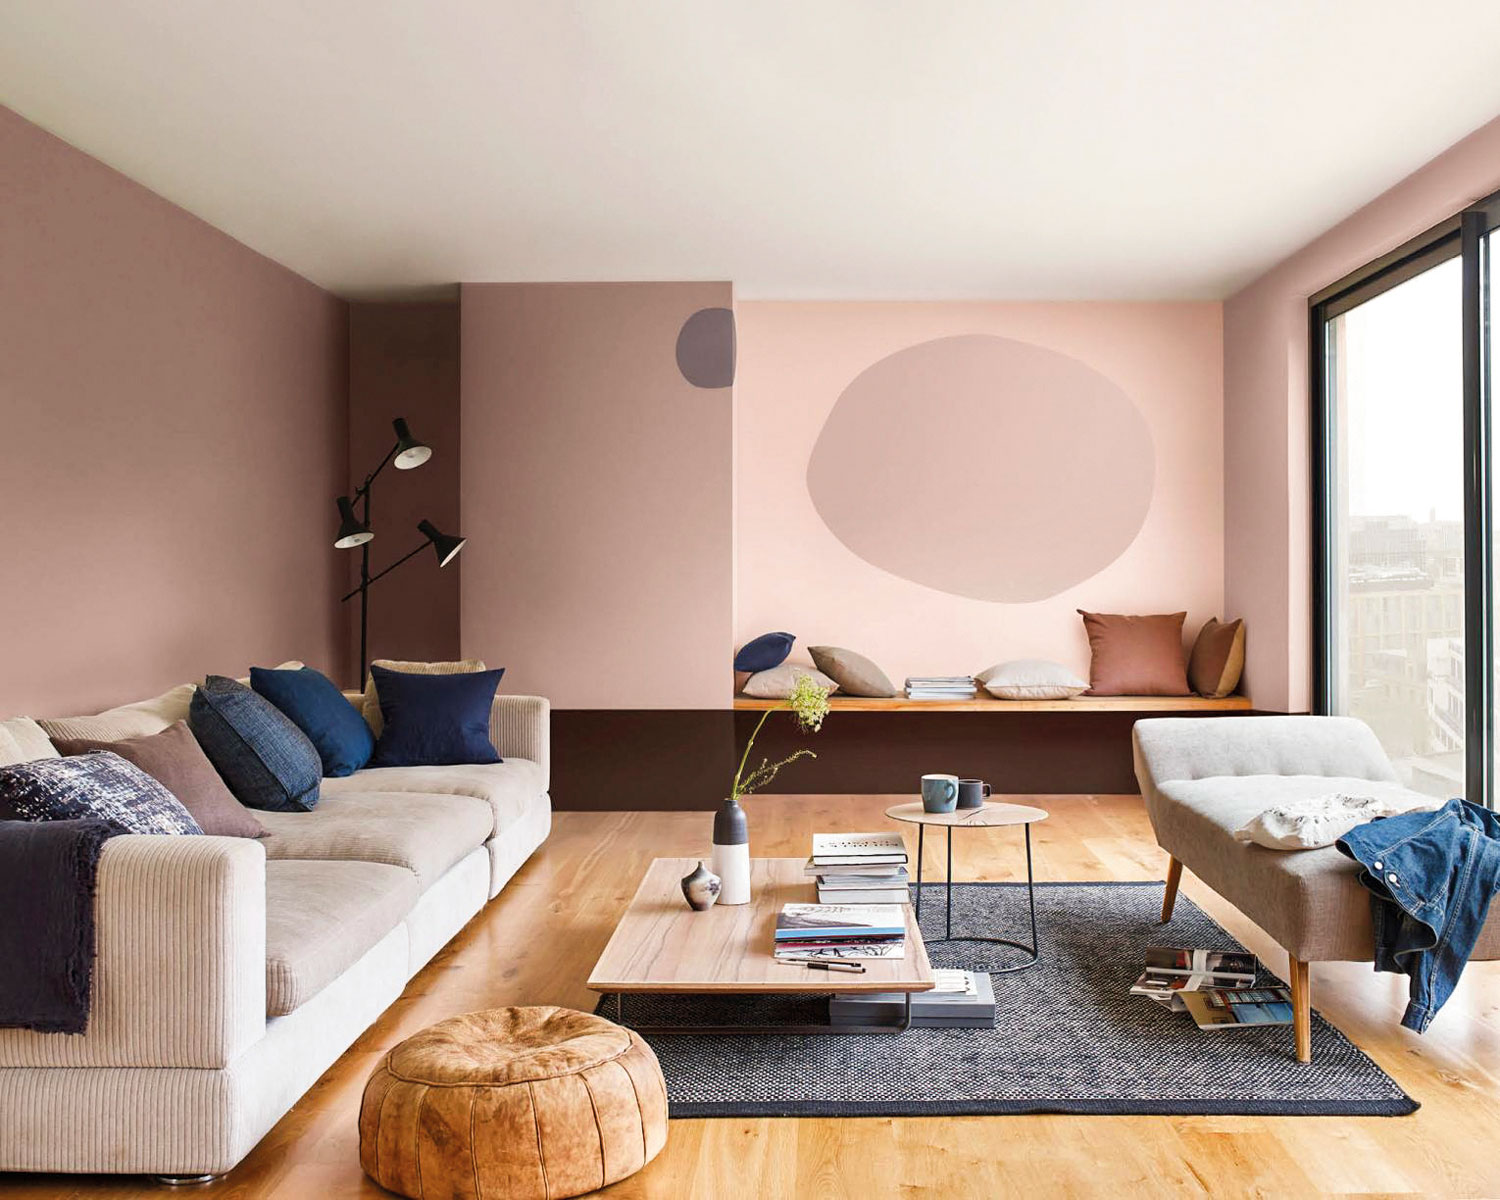 Bruguer-PURPLEcf18 coty living rooms 2048x1638 1. Palo de rosa